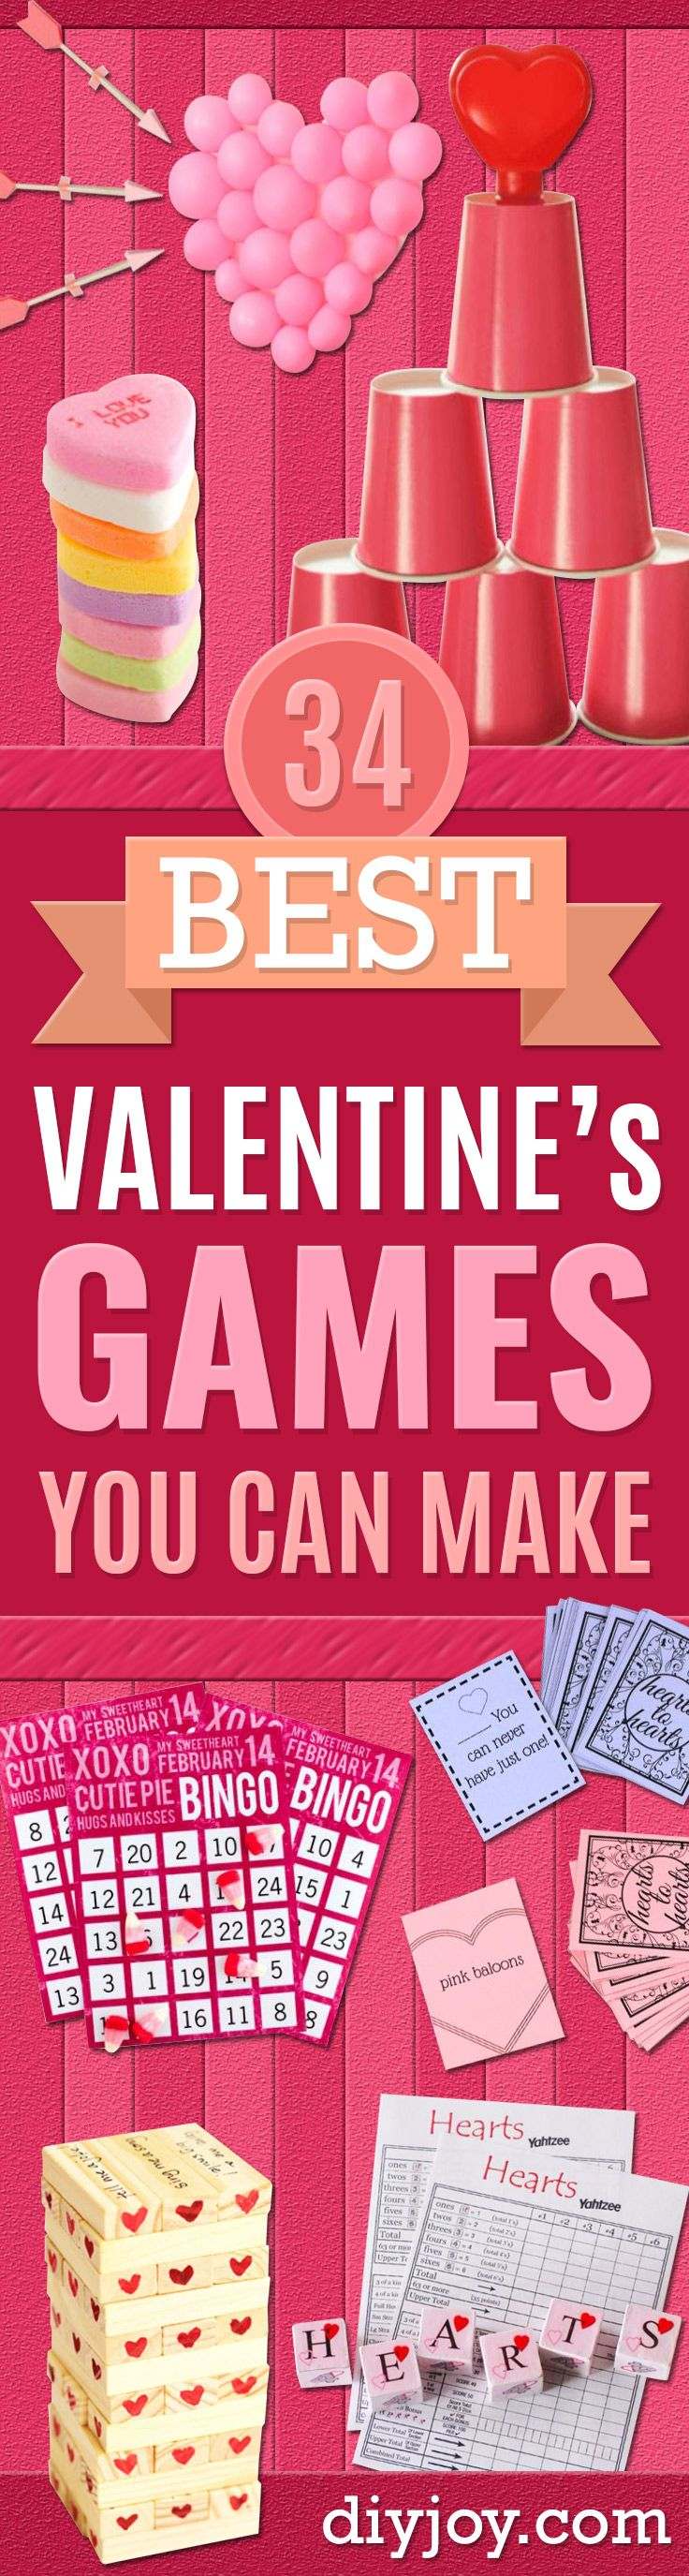 Cool Games To Make for Valentines Day - Cheap and Easy Crafts For Valentine Parties - Ideas for Kids and Adults to Play Bingo, Matching, Free Printables and Cute Game Projects With Hearts, Red and Pink Art Ideas - Adorable Fun for The Holiday Celebrations http://diyjoy.com/diy-valentines-games